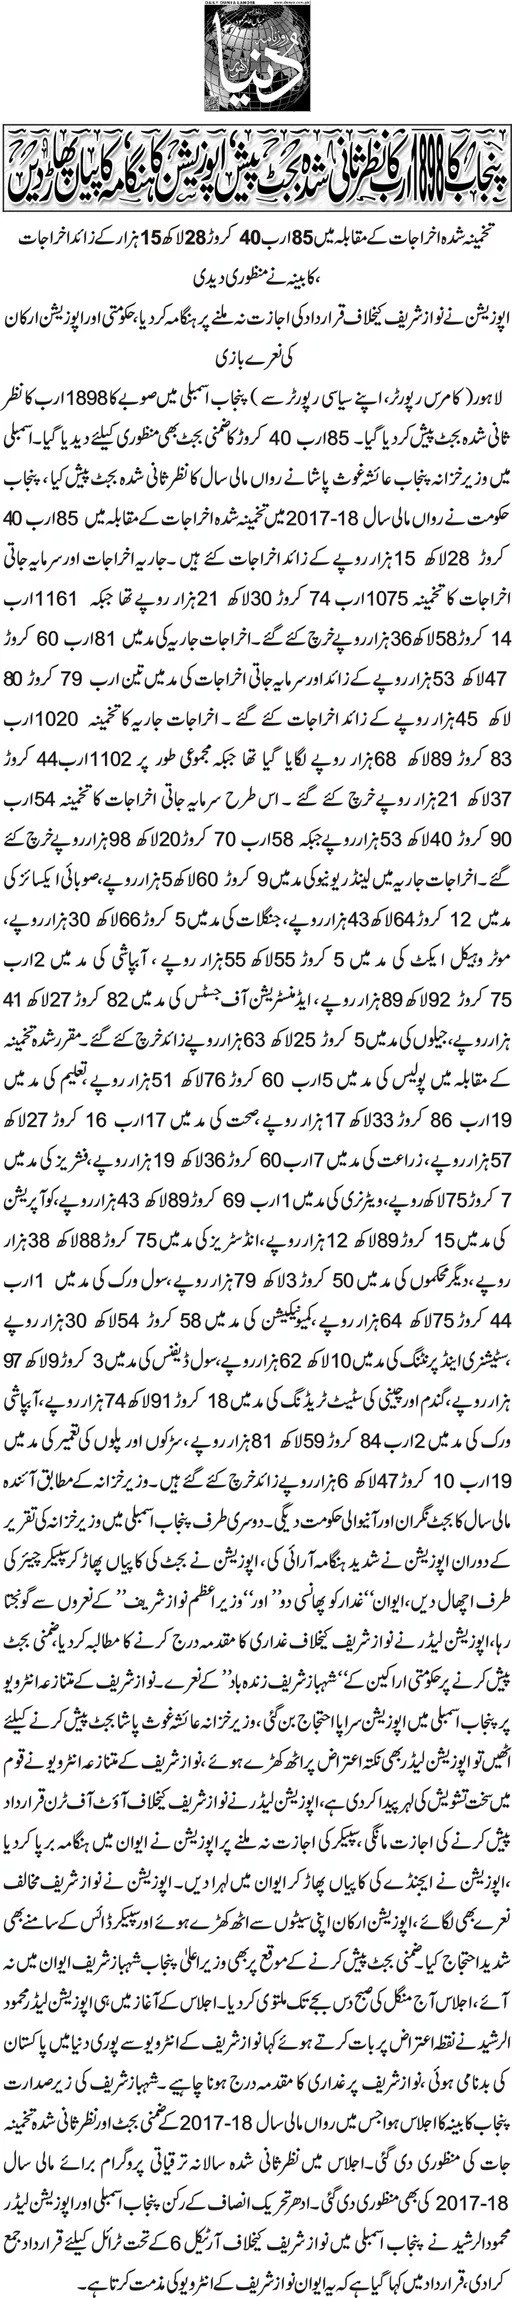 Punjab Budget 2018-19 & Salary Increase Punjab Government Employees